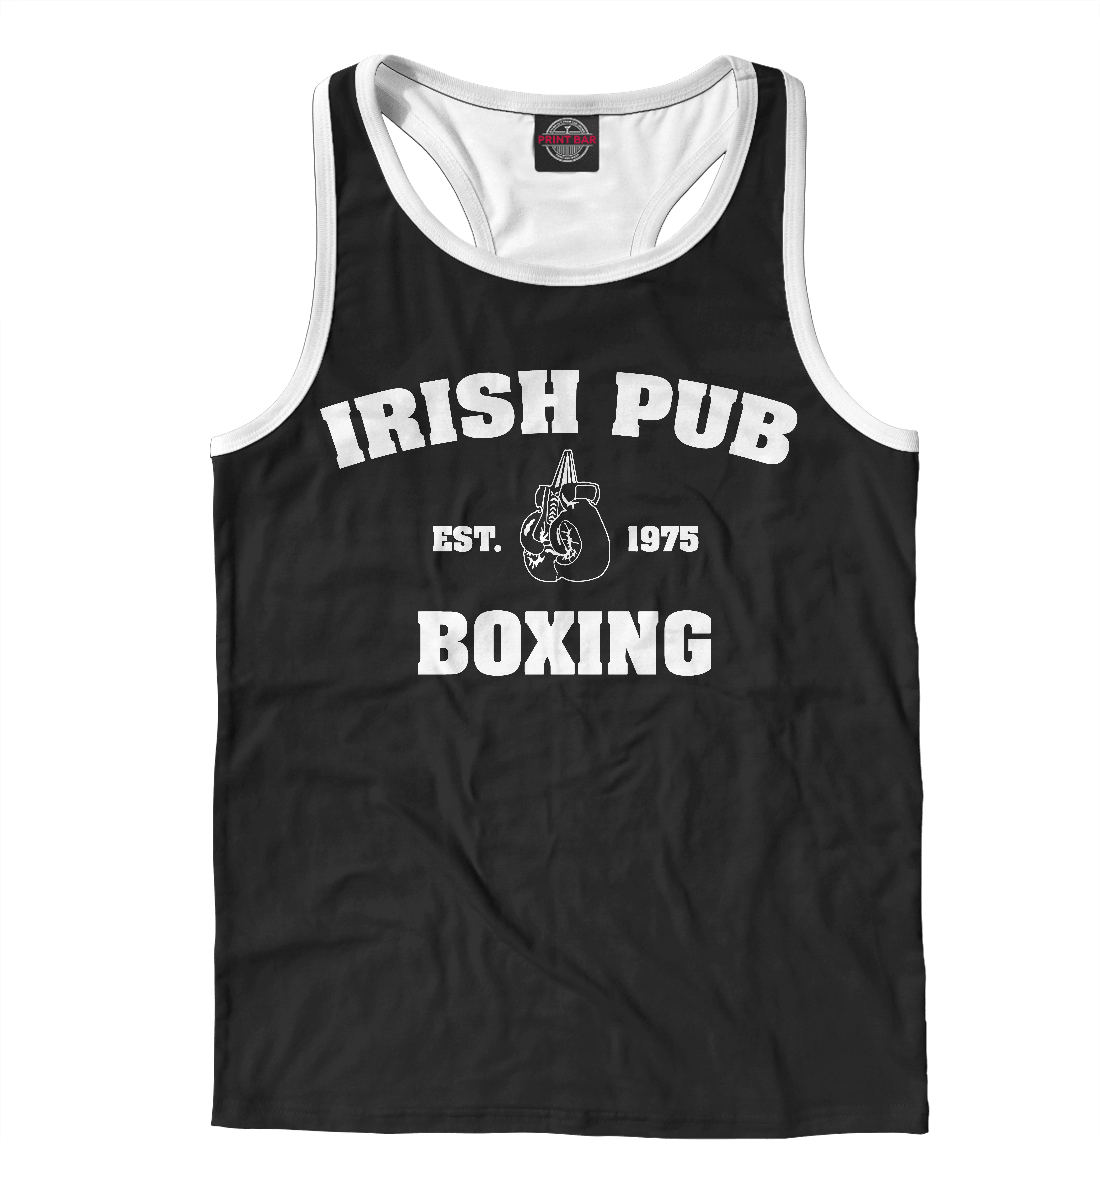 Купить Irish Pub Boxing, Printbar, Майки борцовки, EDI-526090-mayb-2